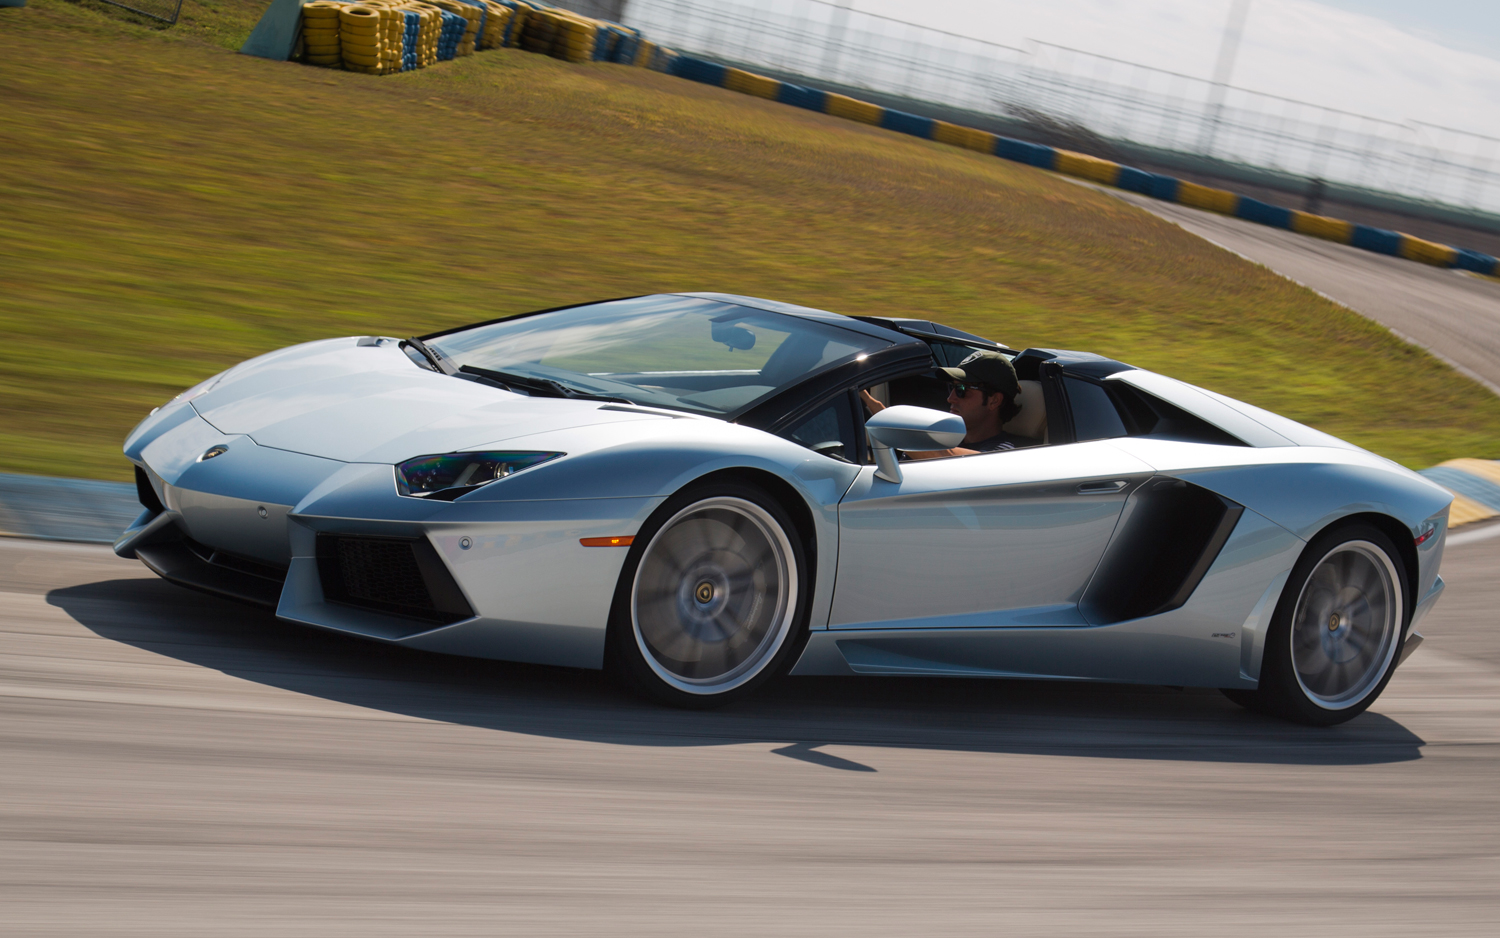 lamborghini 2013 Aventador Roadster Front Three Quarters In Motion images courtesy to converter free download